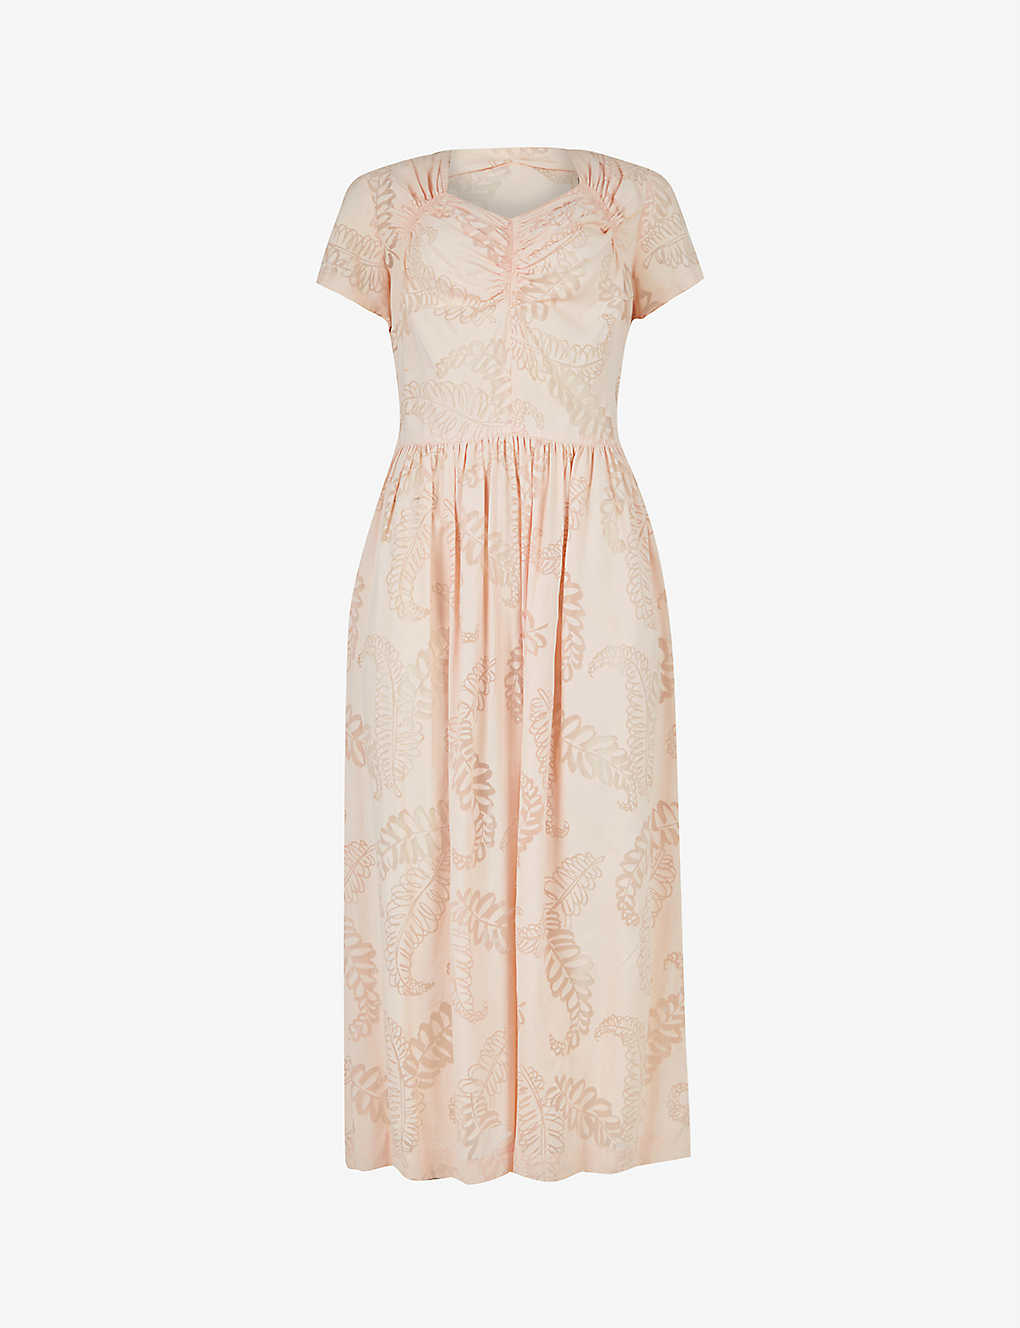 Pre-loved 1940s floral woven midi dress